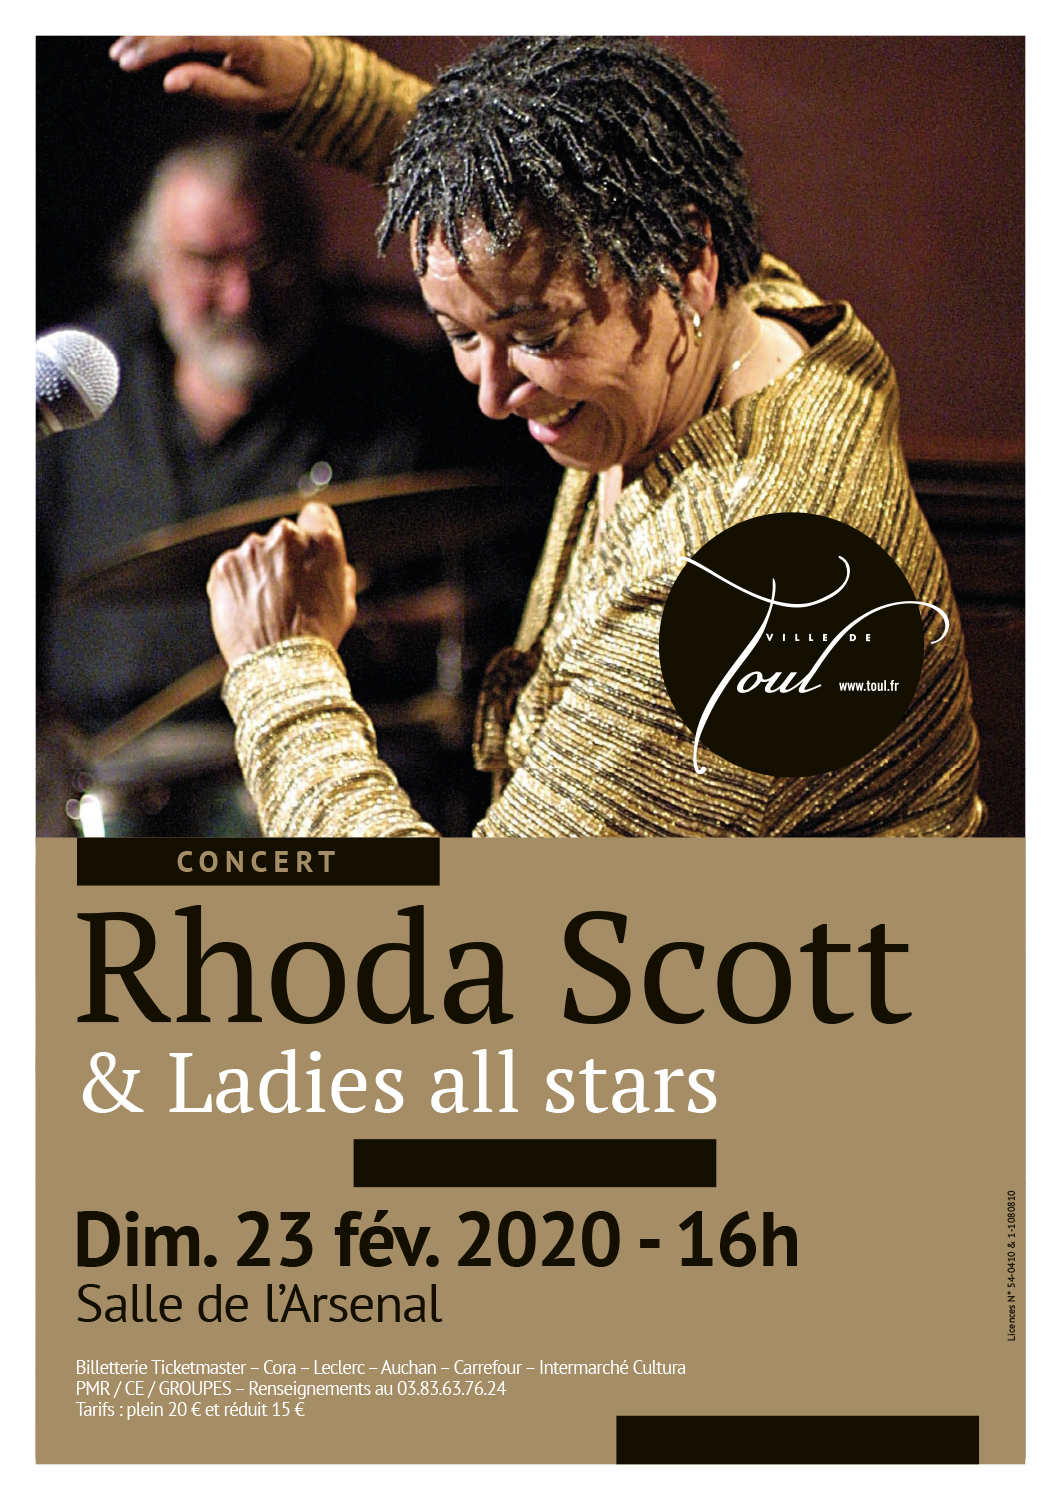 RHODA SCOTT & LADIES ALL STARS